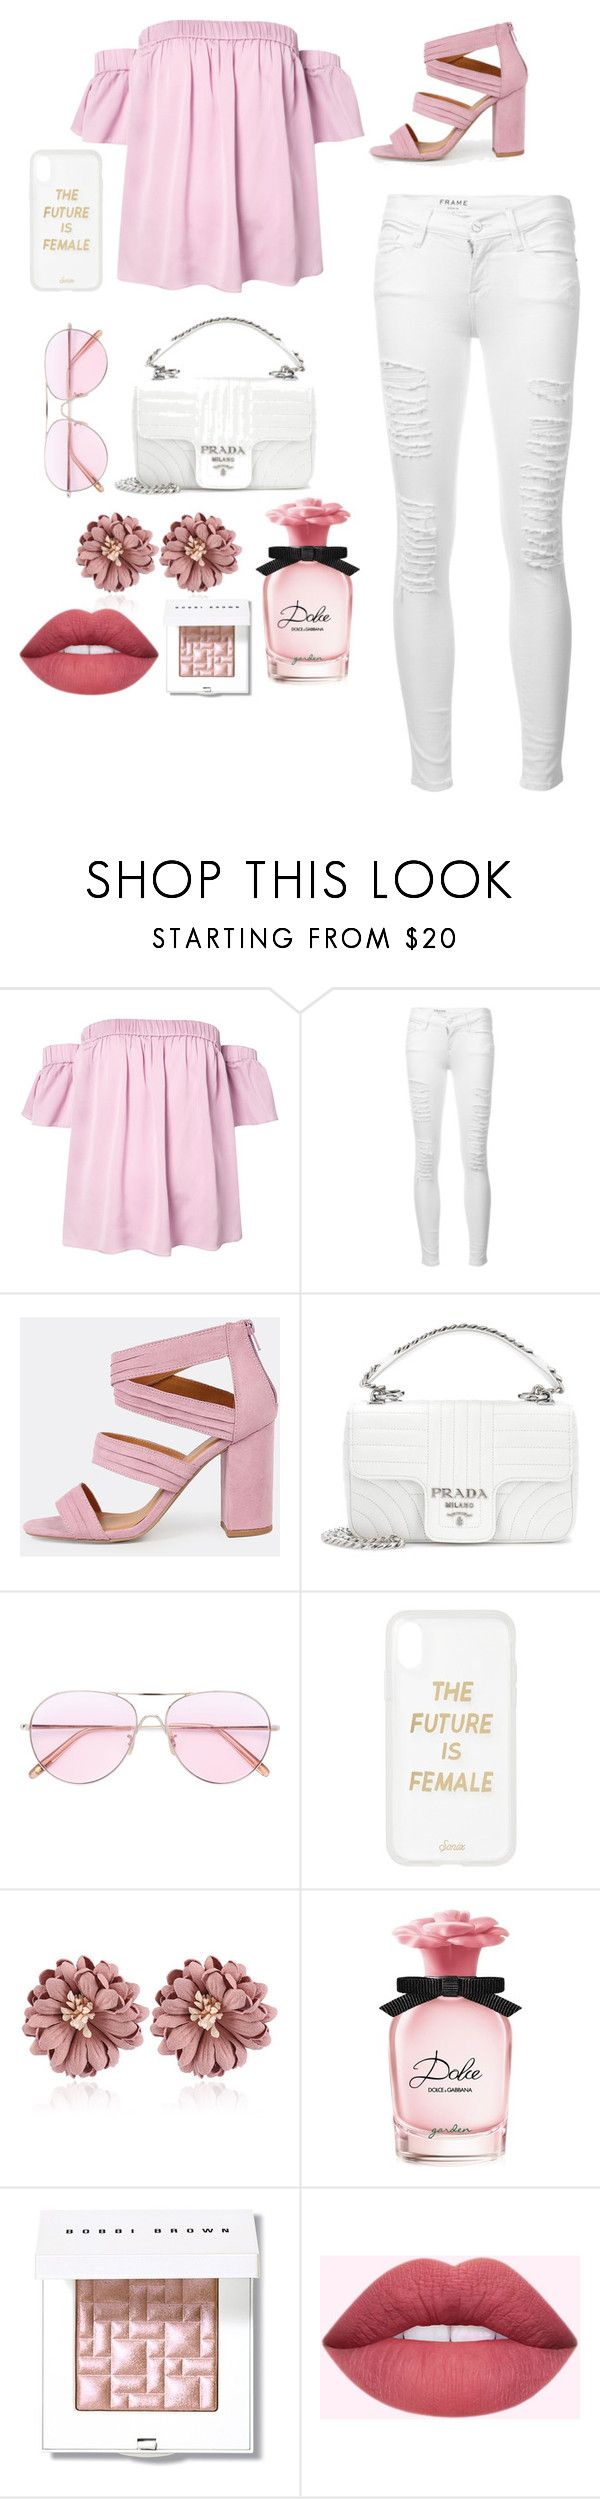 """blackbird singing in the dead of night🌸💓"" by aeburgi04 on Polyvore featuring Milly, Frame, Prada, Oliver Peoples, Sonix, Dolce&Gabbana and Bobbi Brown Cosmetics"